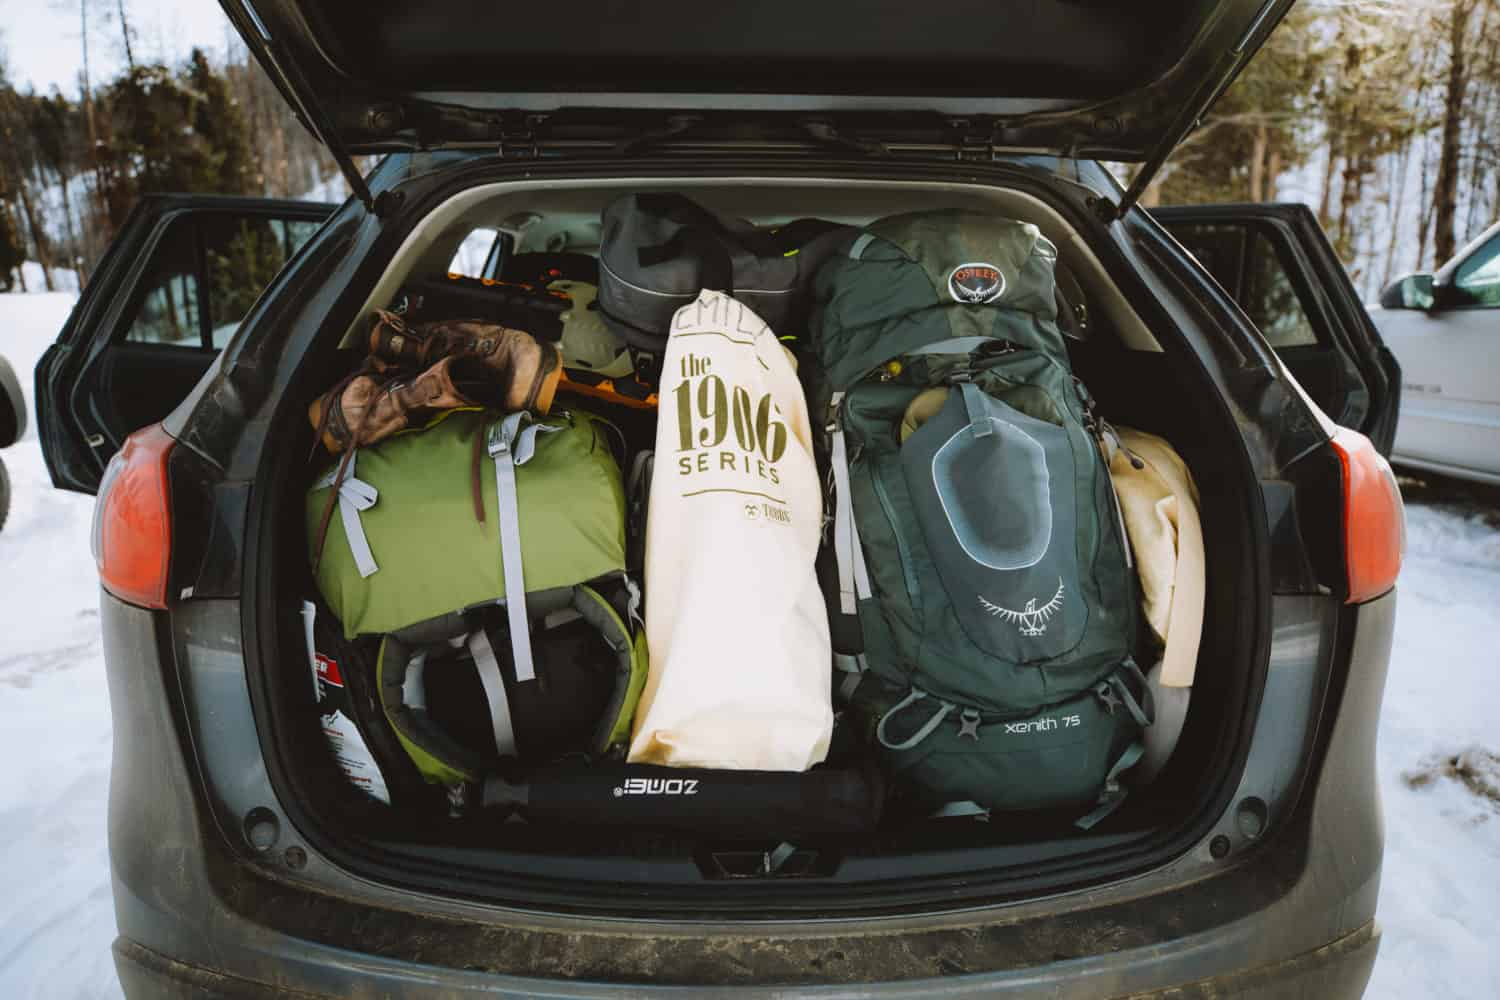 Trunk of car, full of hiking gear